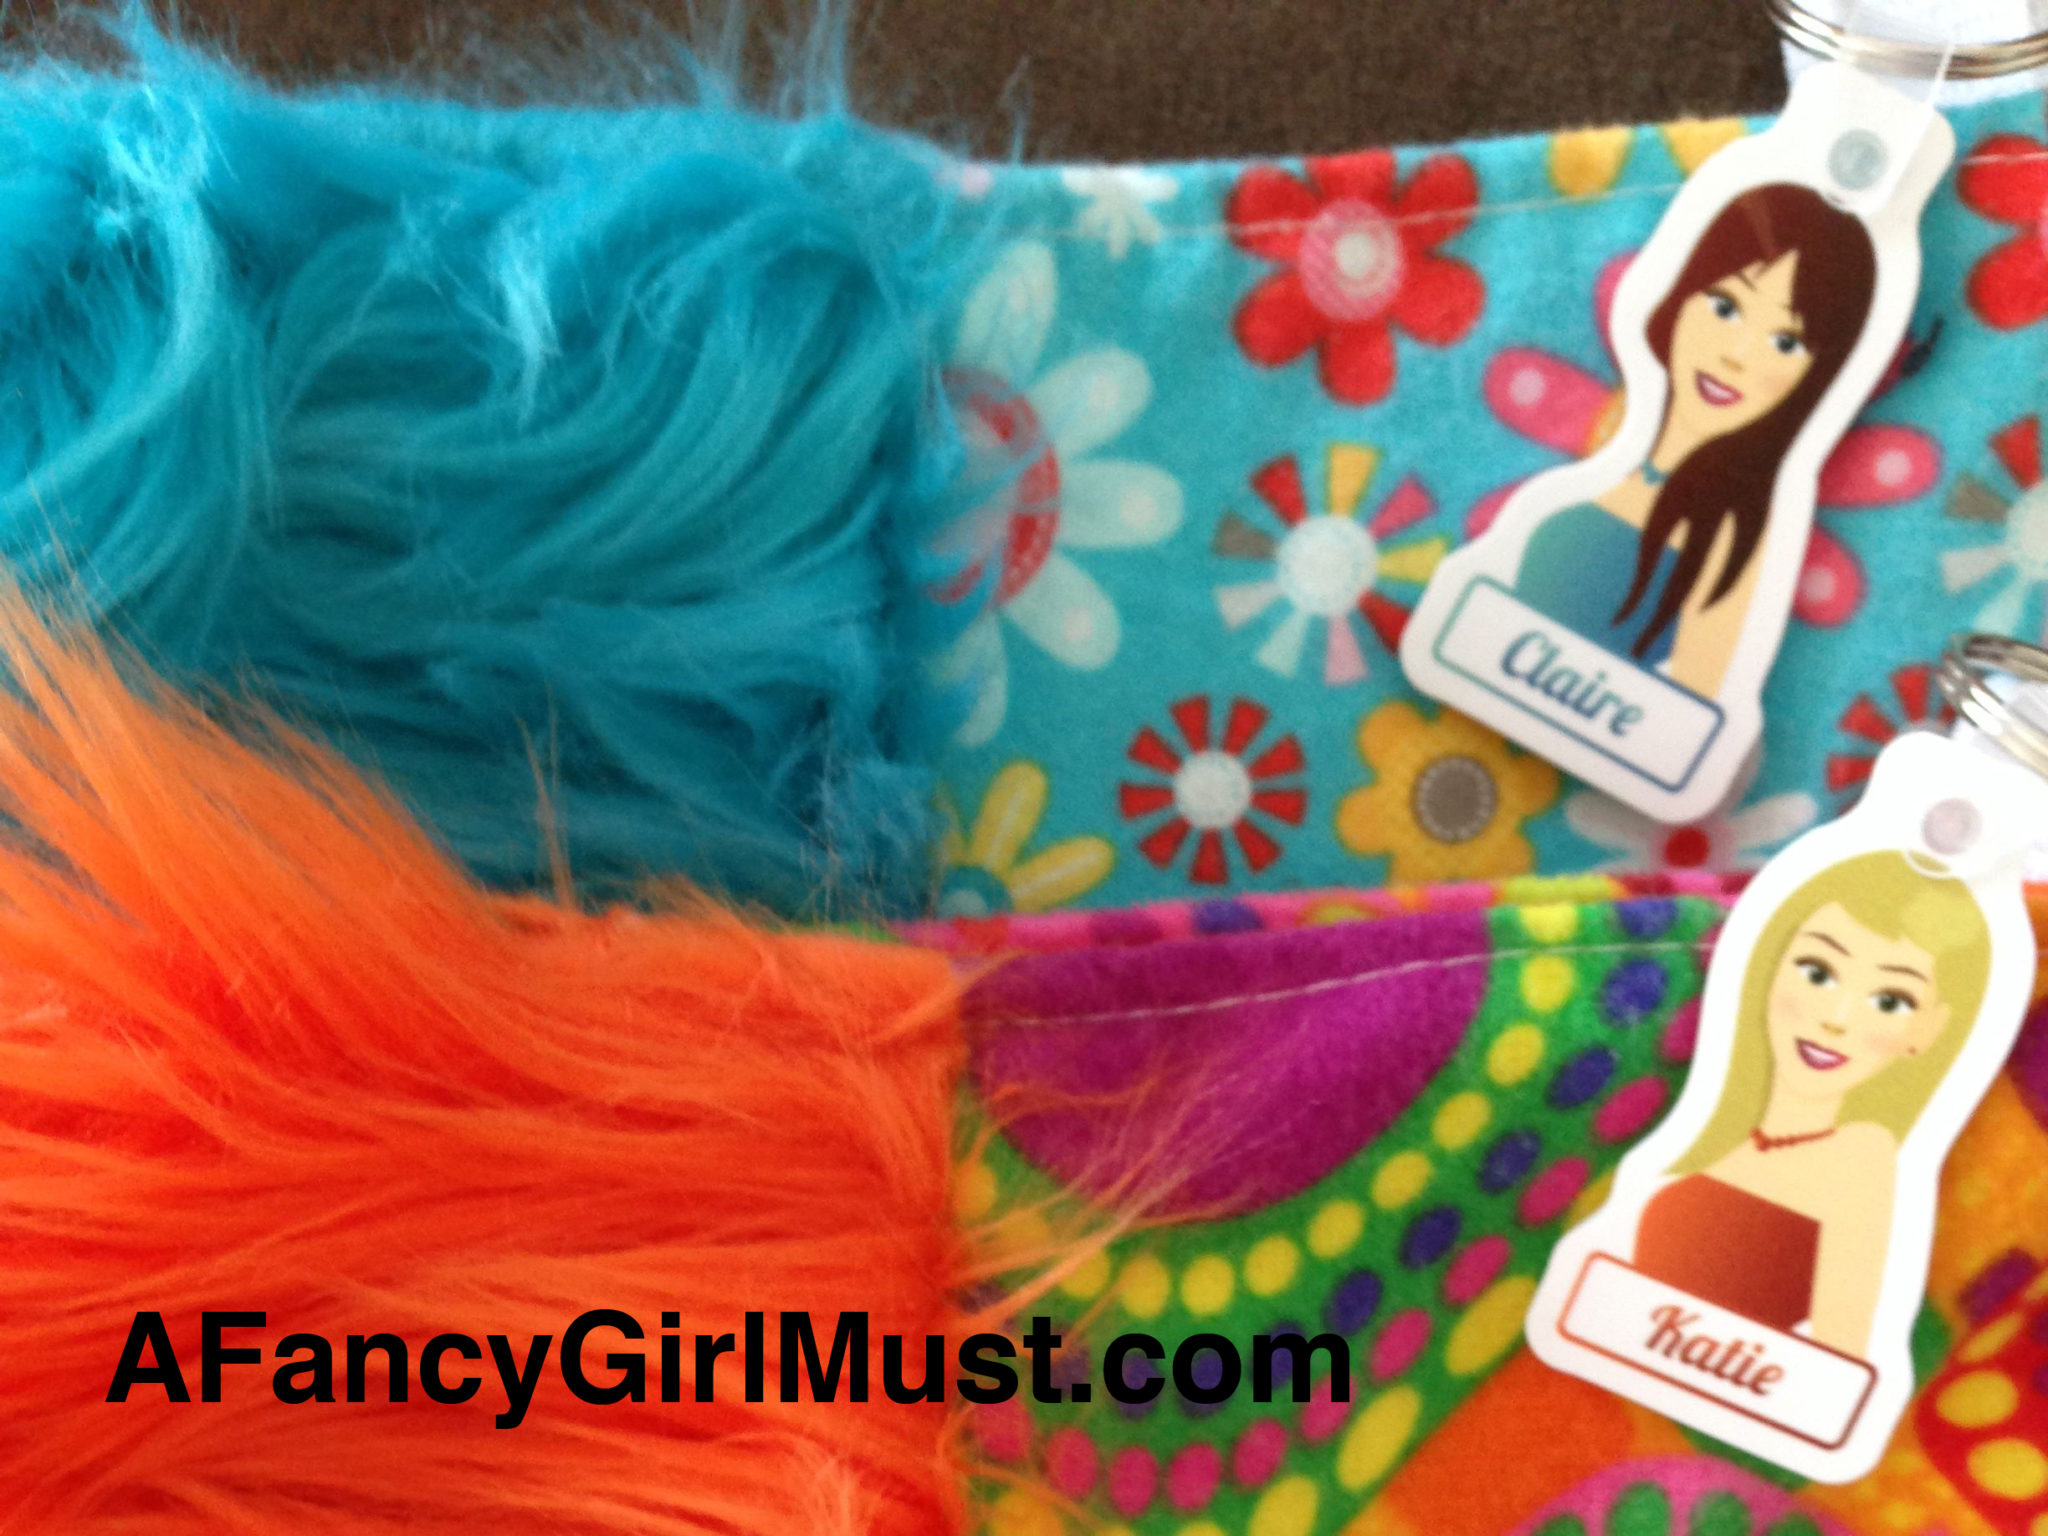 Real Fancy Girl Review: Bestie Bags | AFancyGirlMust.com